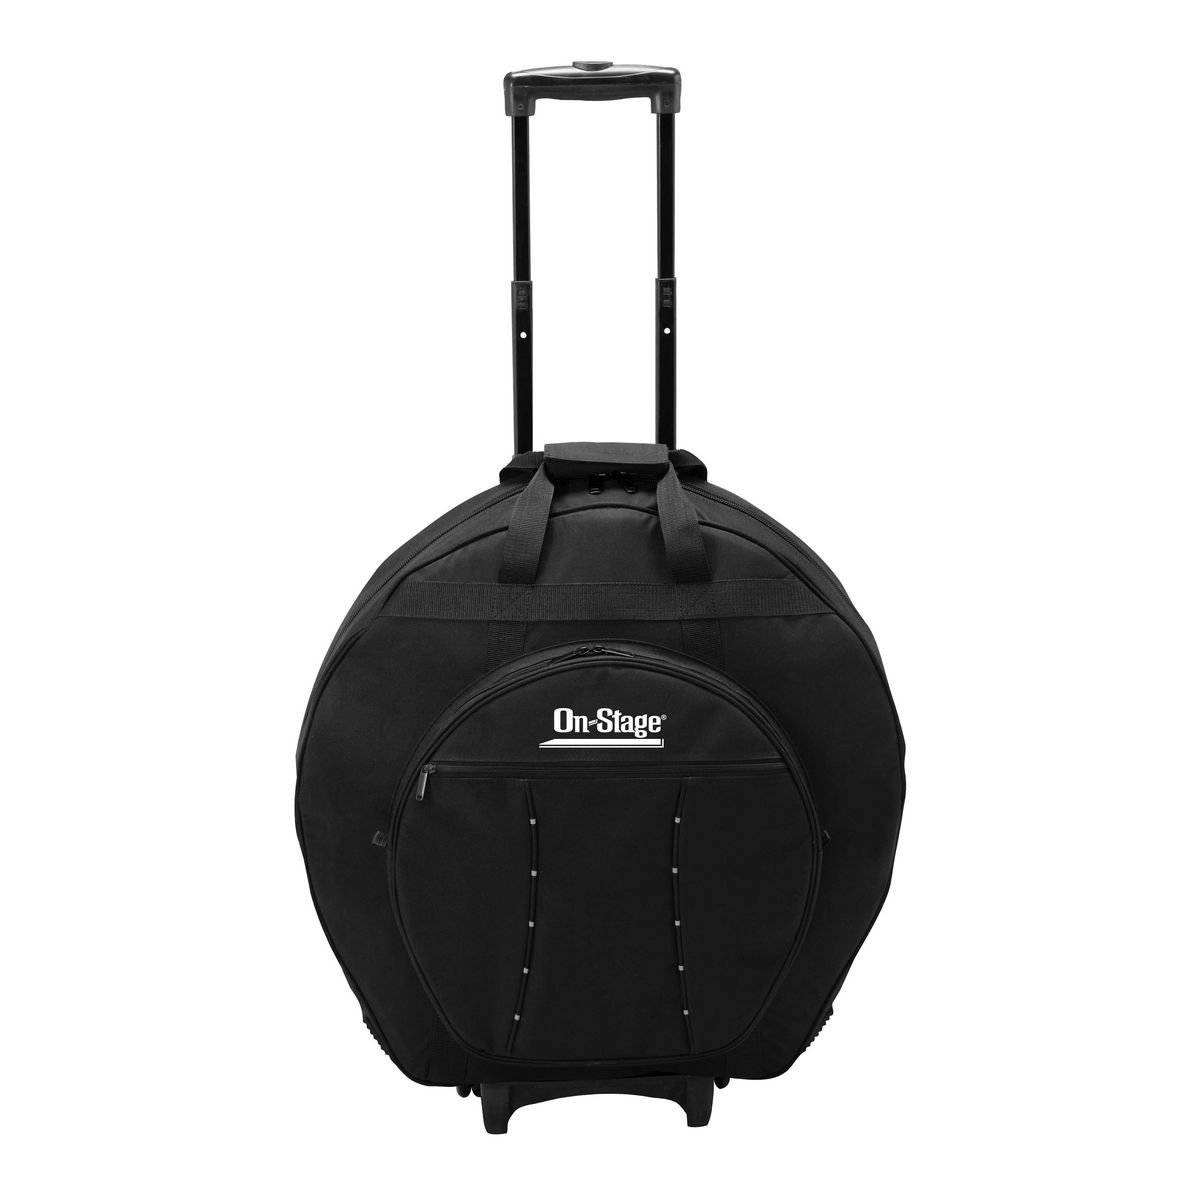 On-Stage CBT4200D Cymbal Trolley Bag